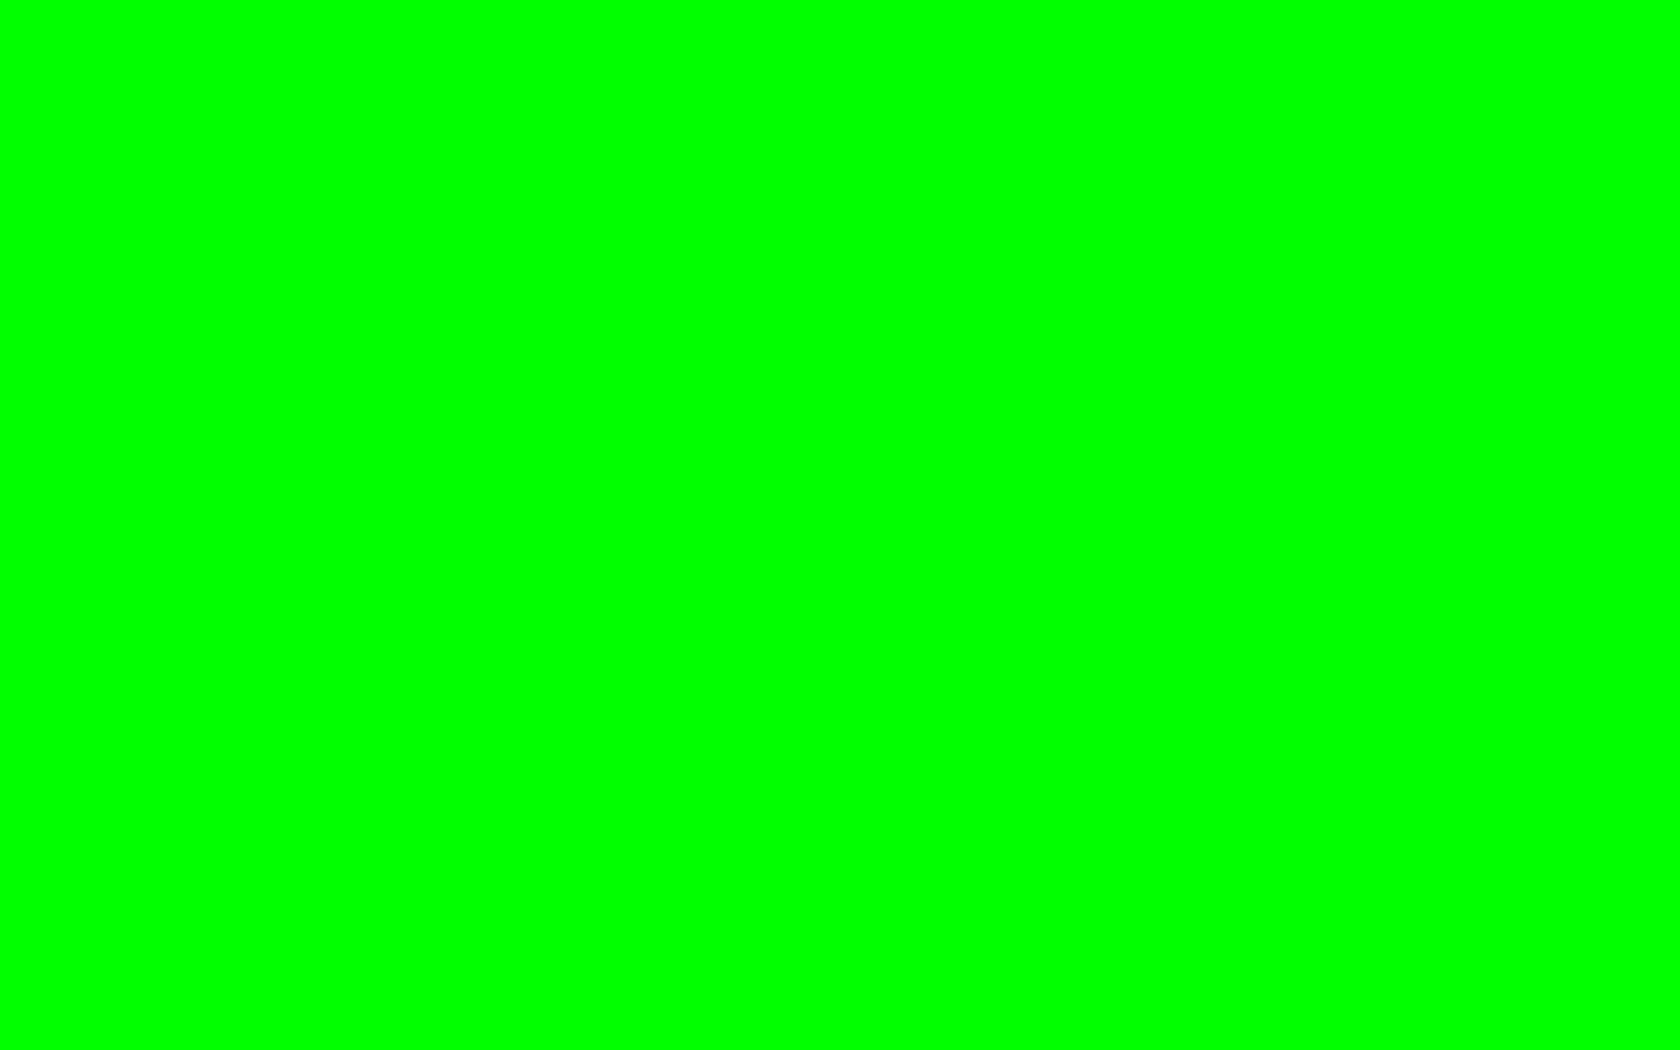 1680x1050 Lime Web Green Solid Color Background